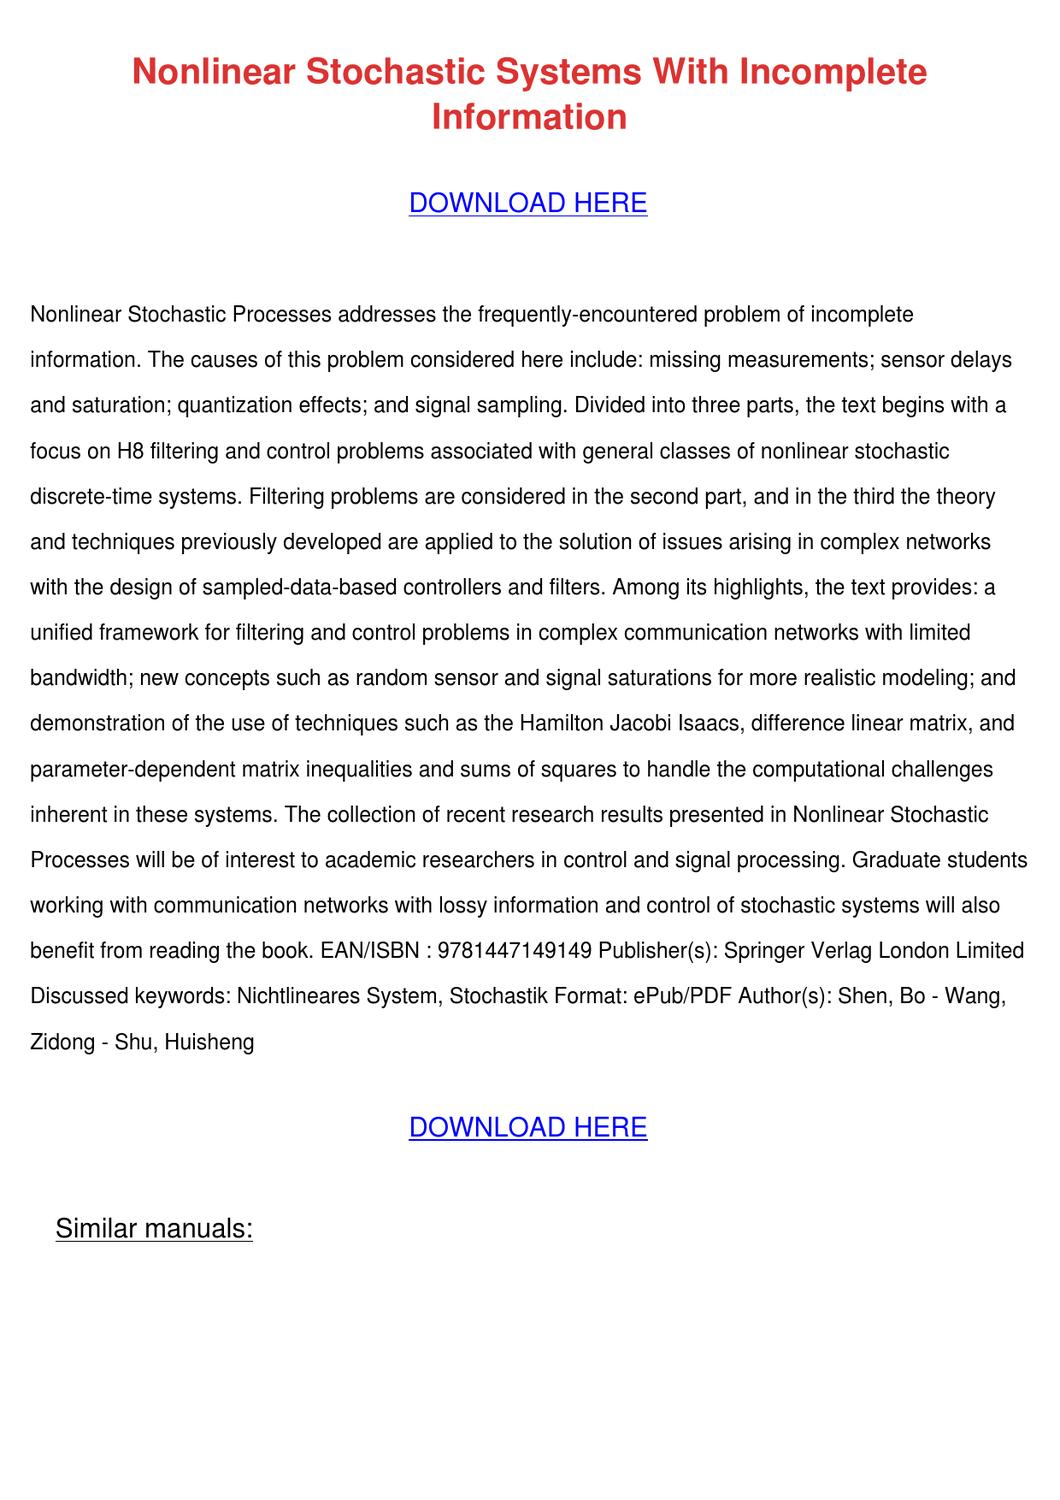 Nonlinear Stochastic Systems with Incomplete Information: Filtering and Control